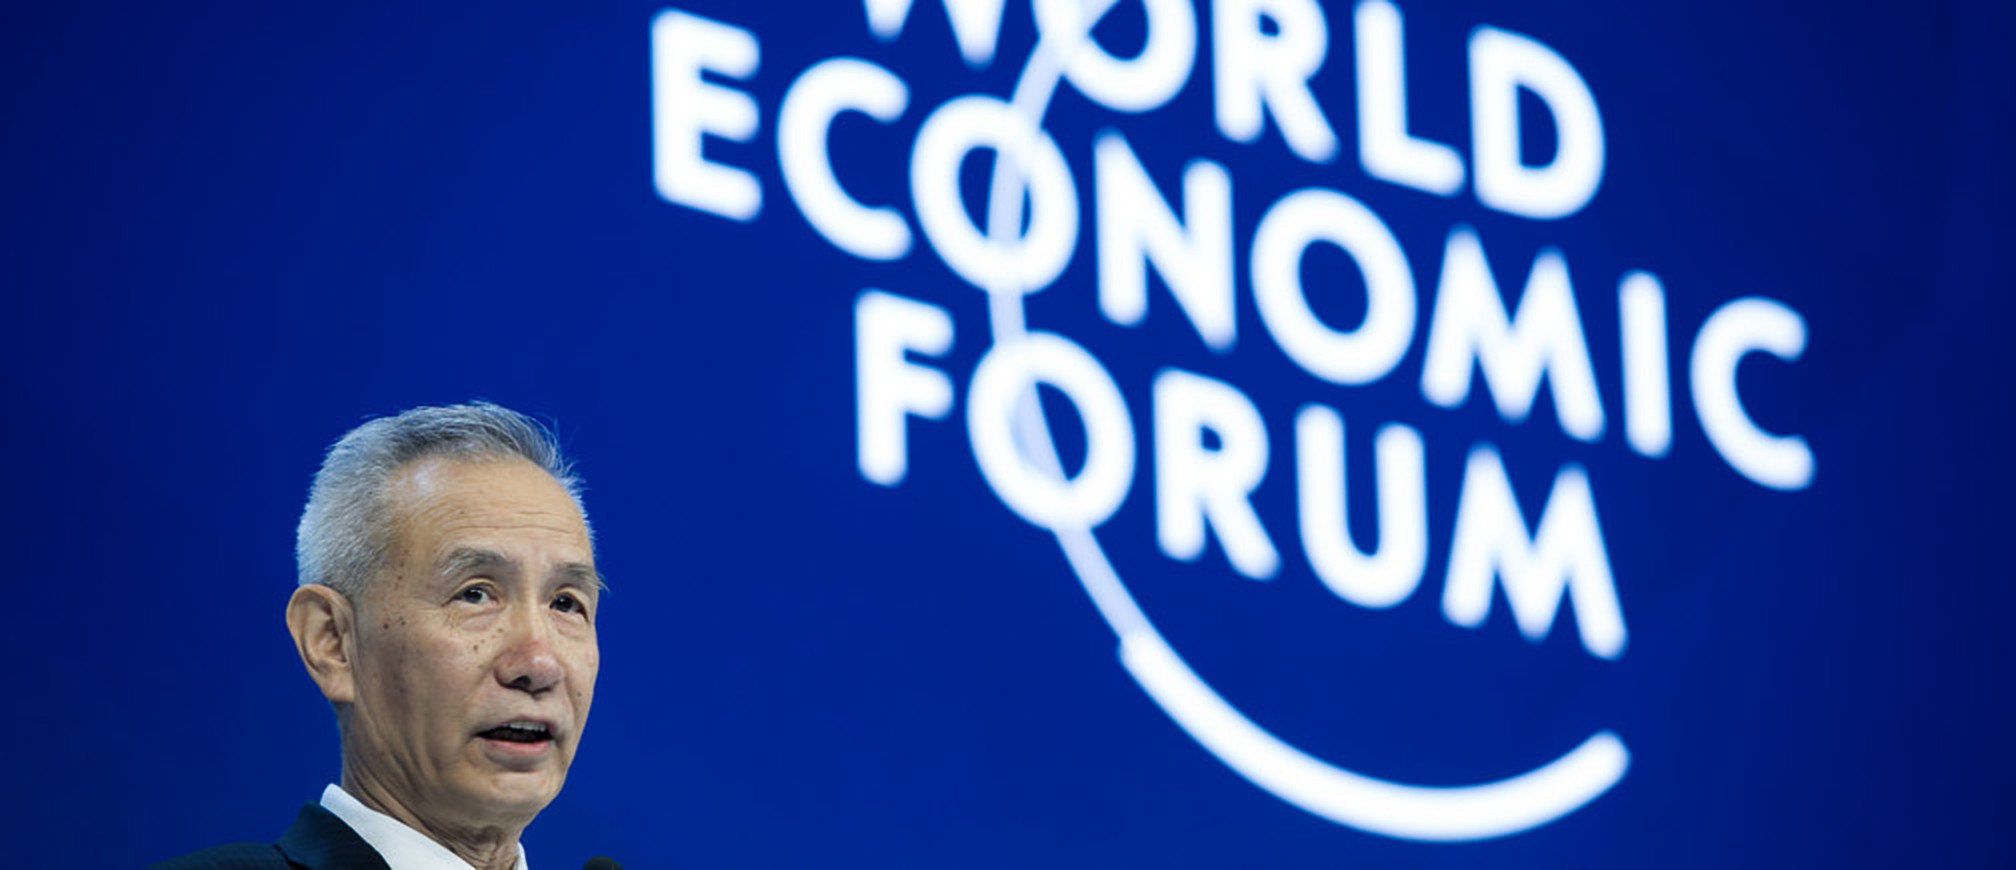 The 40th anniversary of the Davos Forum 01/27/2010 70